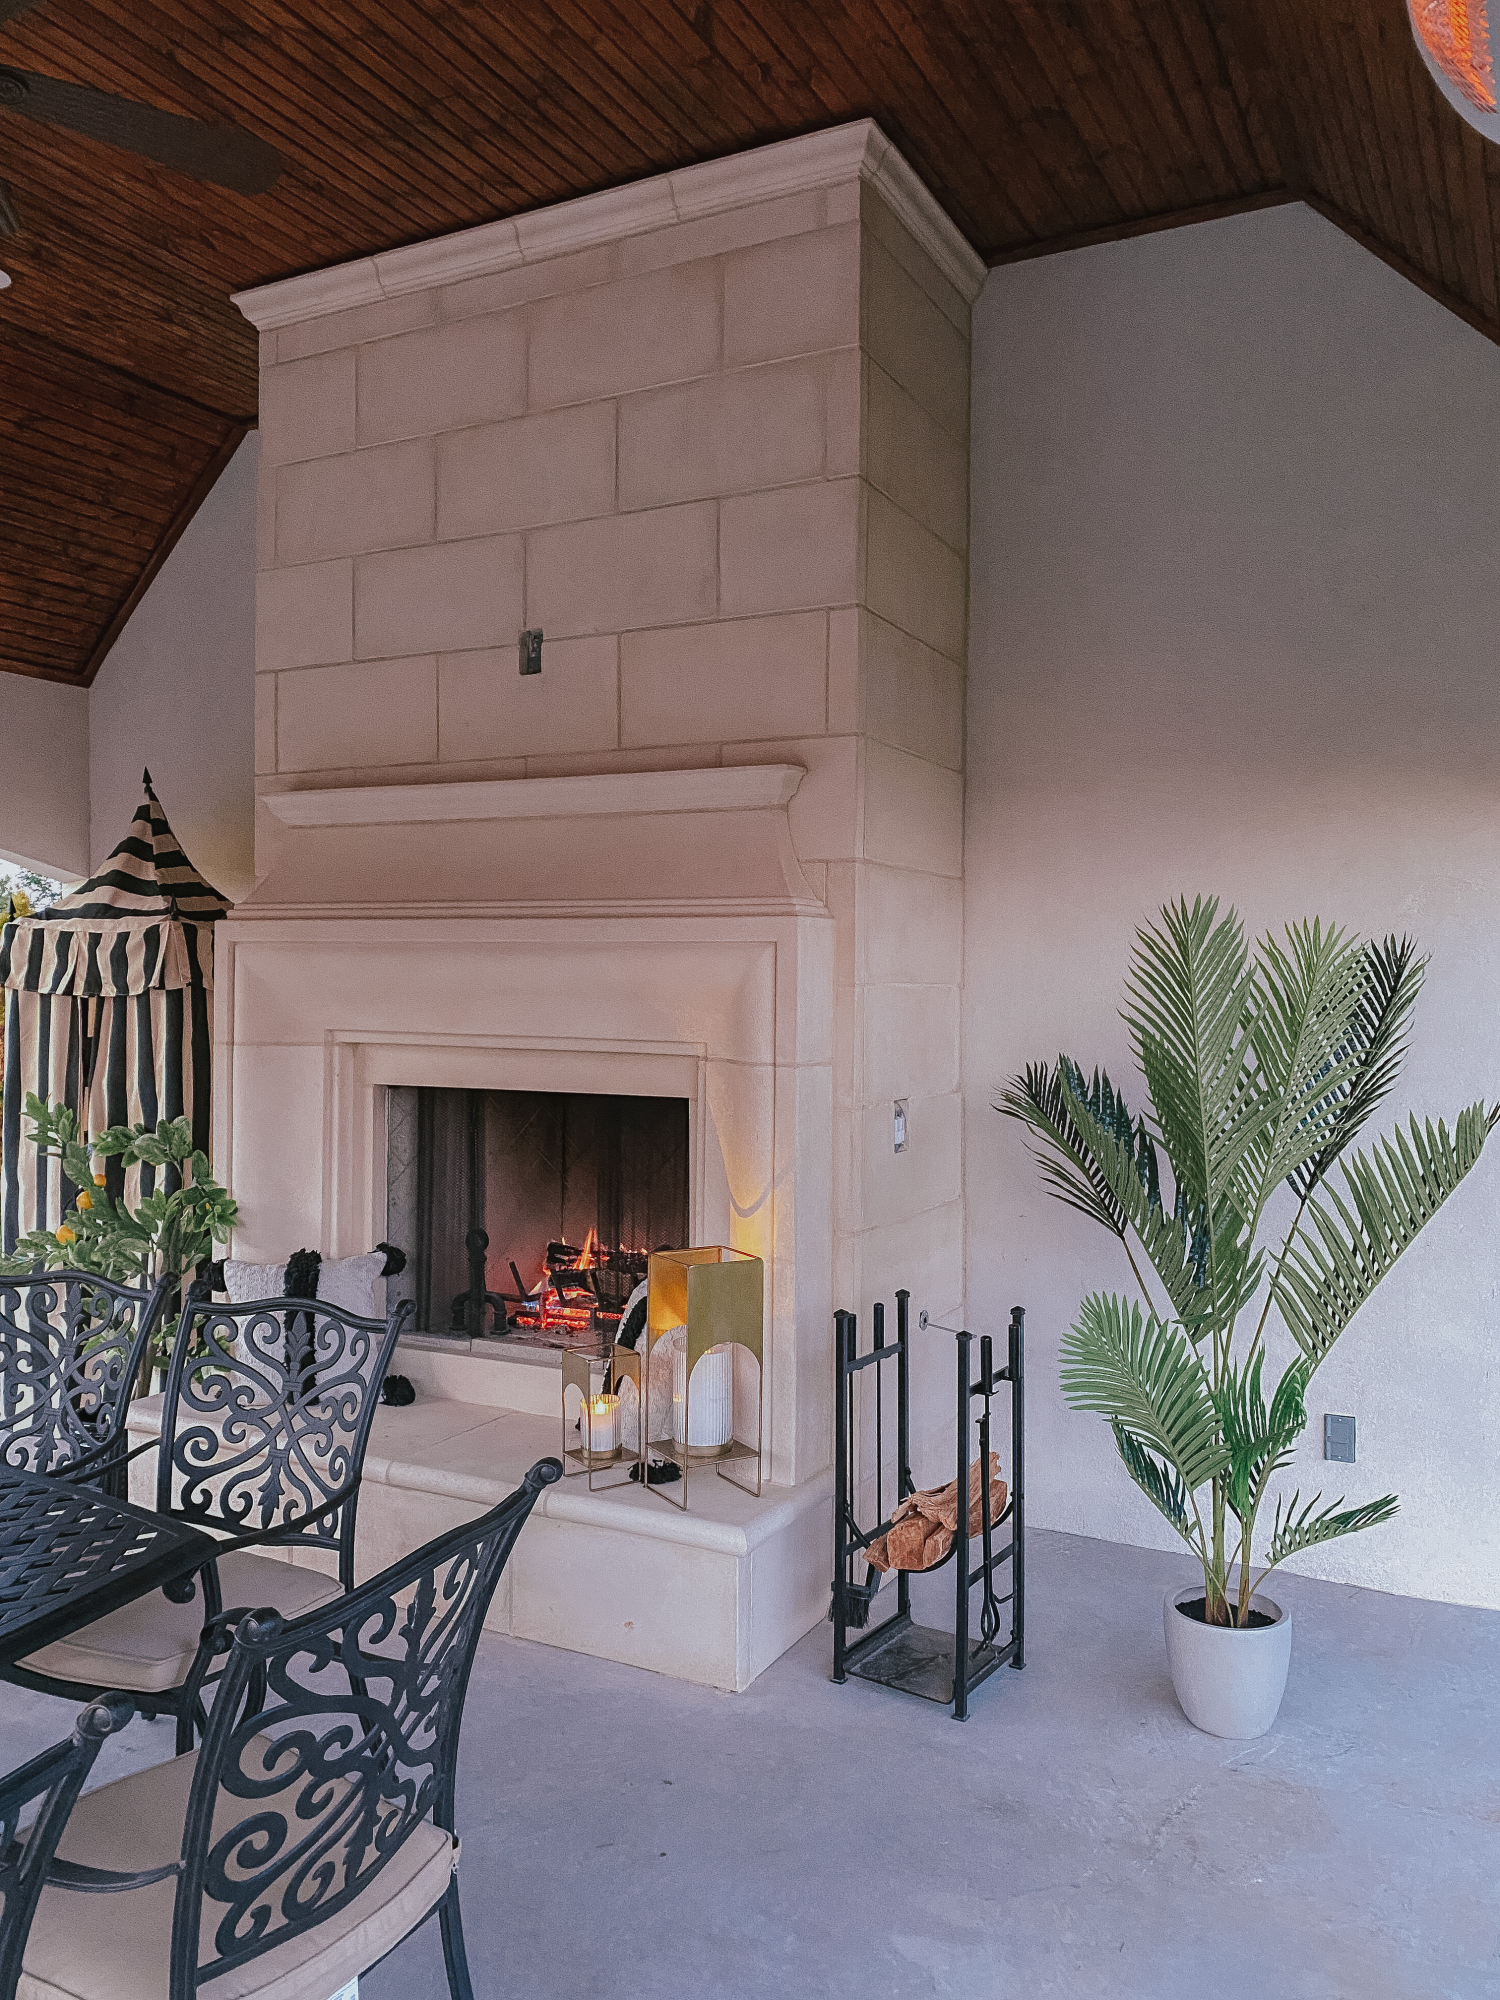 Backyard Decor by popular US life and style blog, The Sweetest Thing: image of a black metal outdoor table and chairs, faux palm tree plant, fireplace, metal log holder, and gold lanterns.